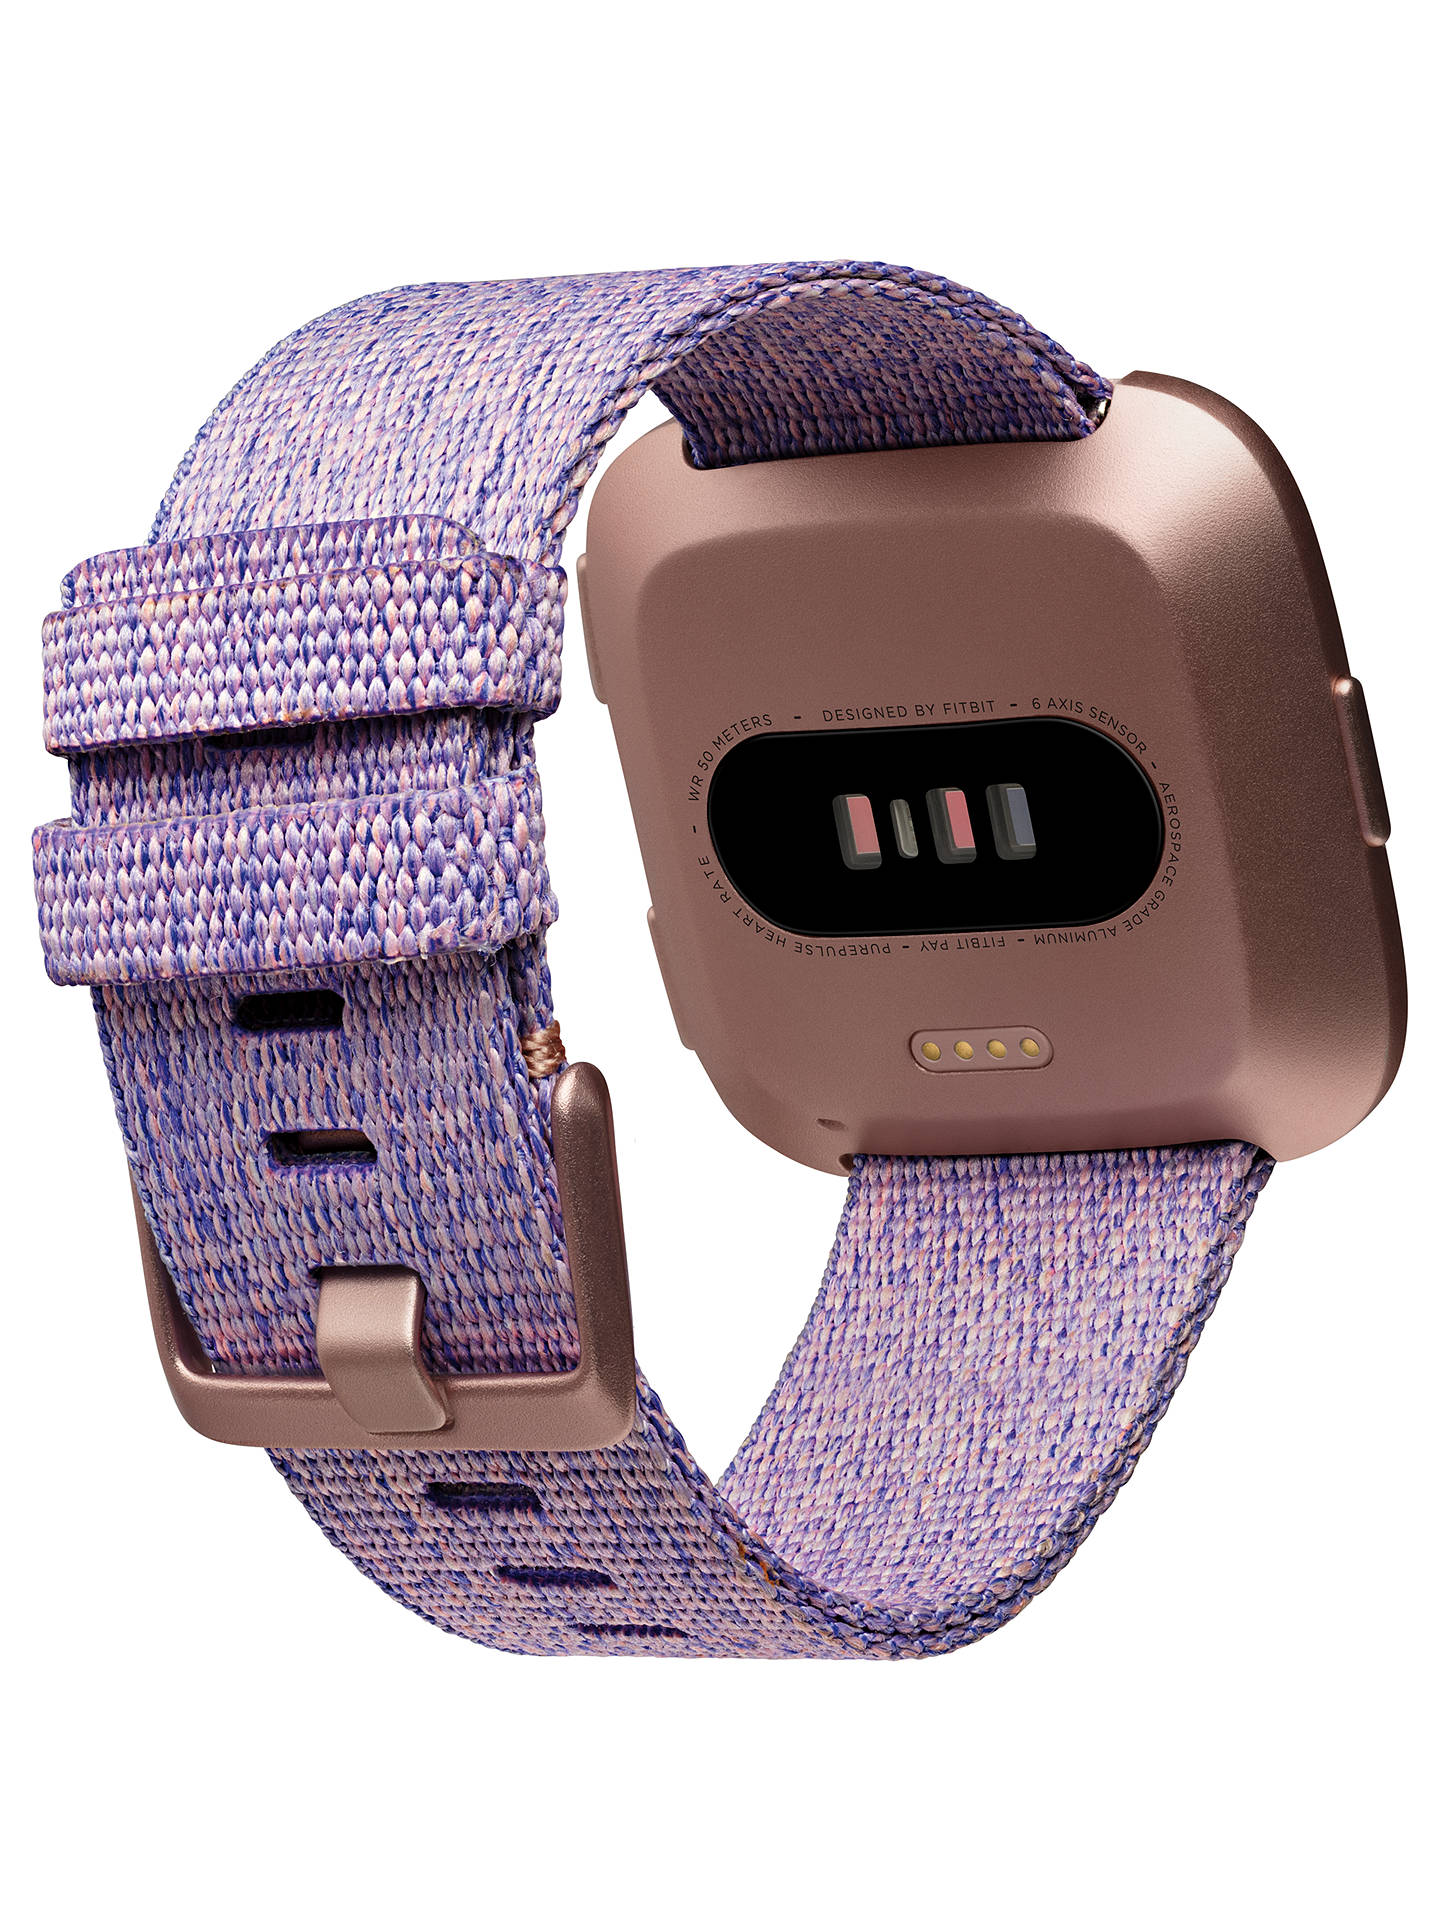 BuyFitbit Versa SE Smart Fitness Watch, Lavender Online at johnlewis.com